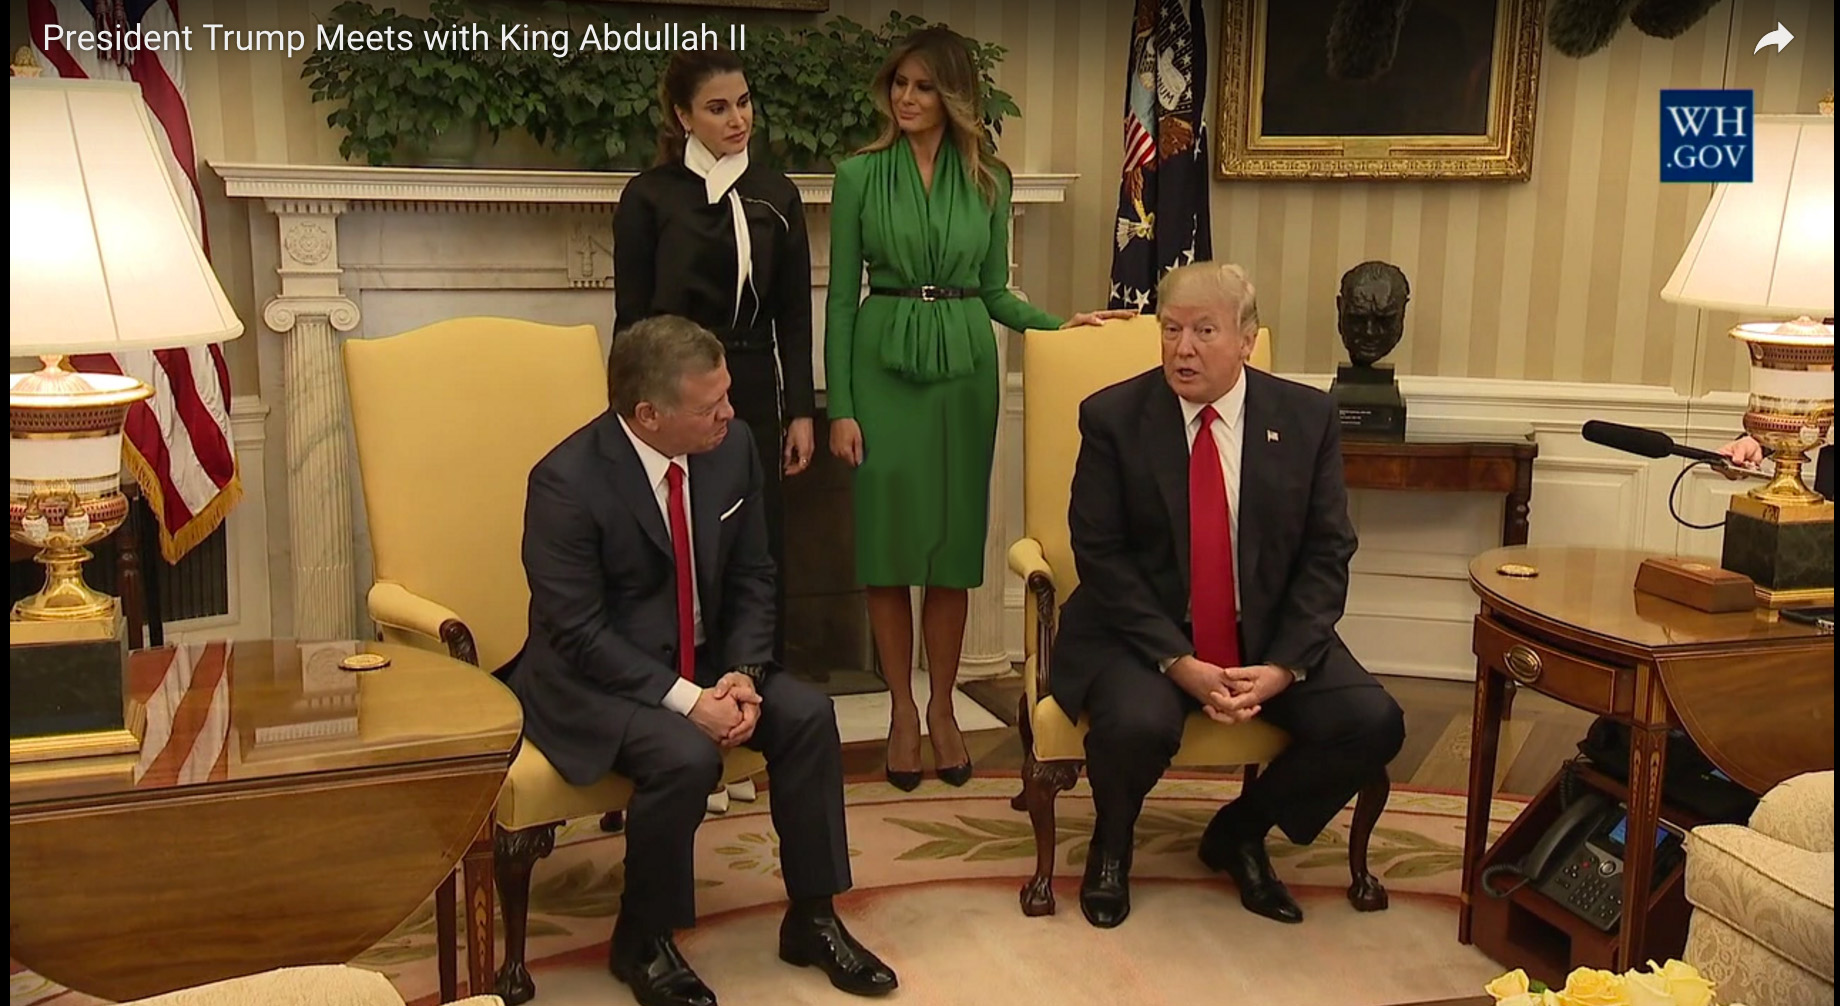 Jordan's King Abdullah II meets with President Donald Trump at the White House Wednesday April 5, 2017. Photo courtesy of the White House